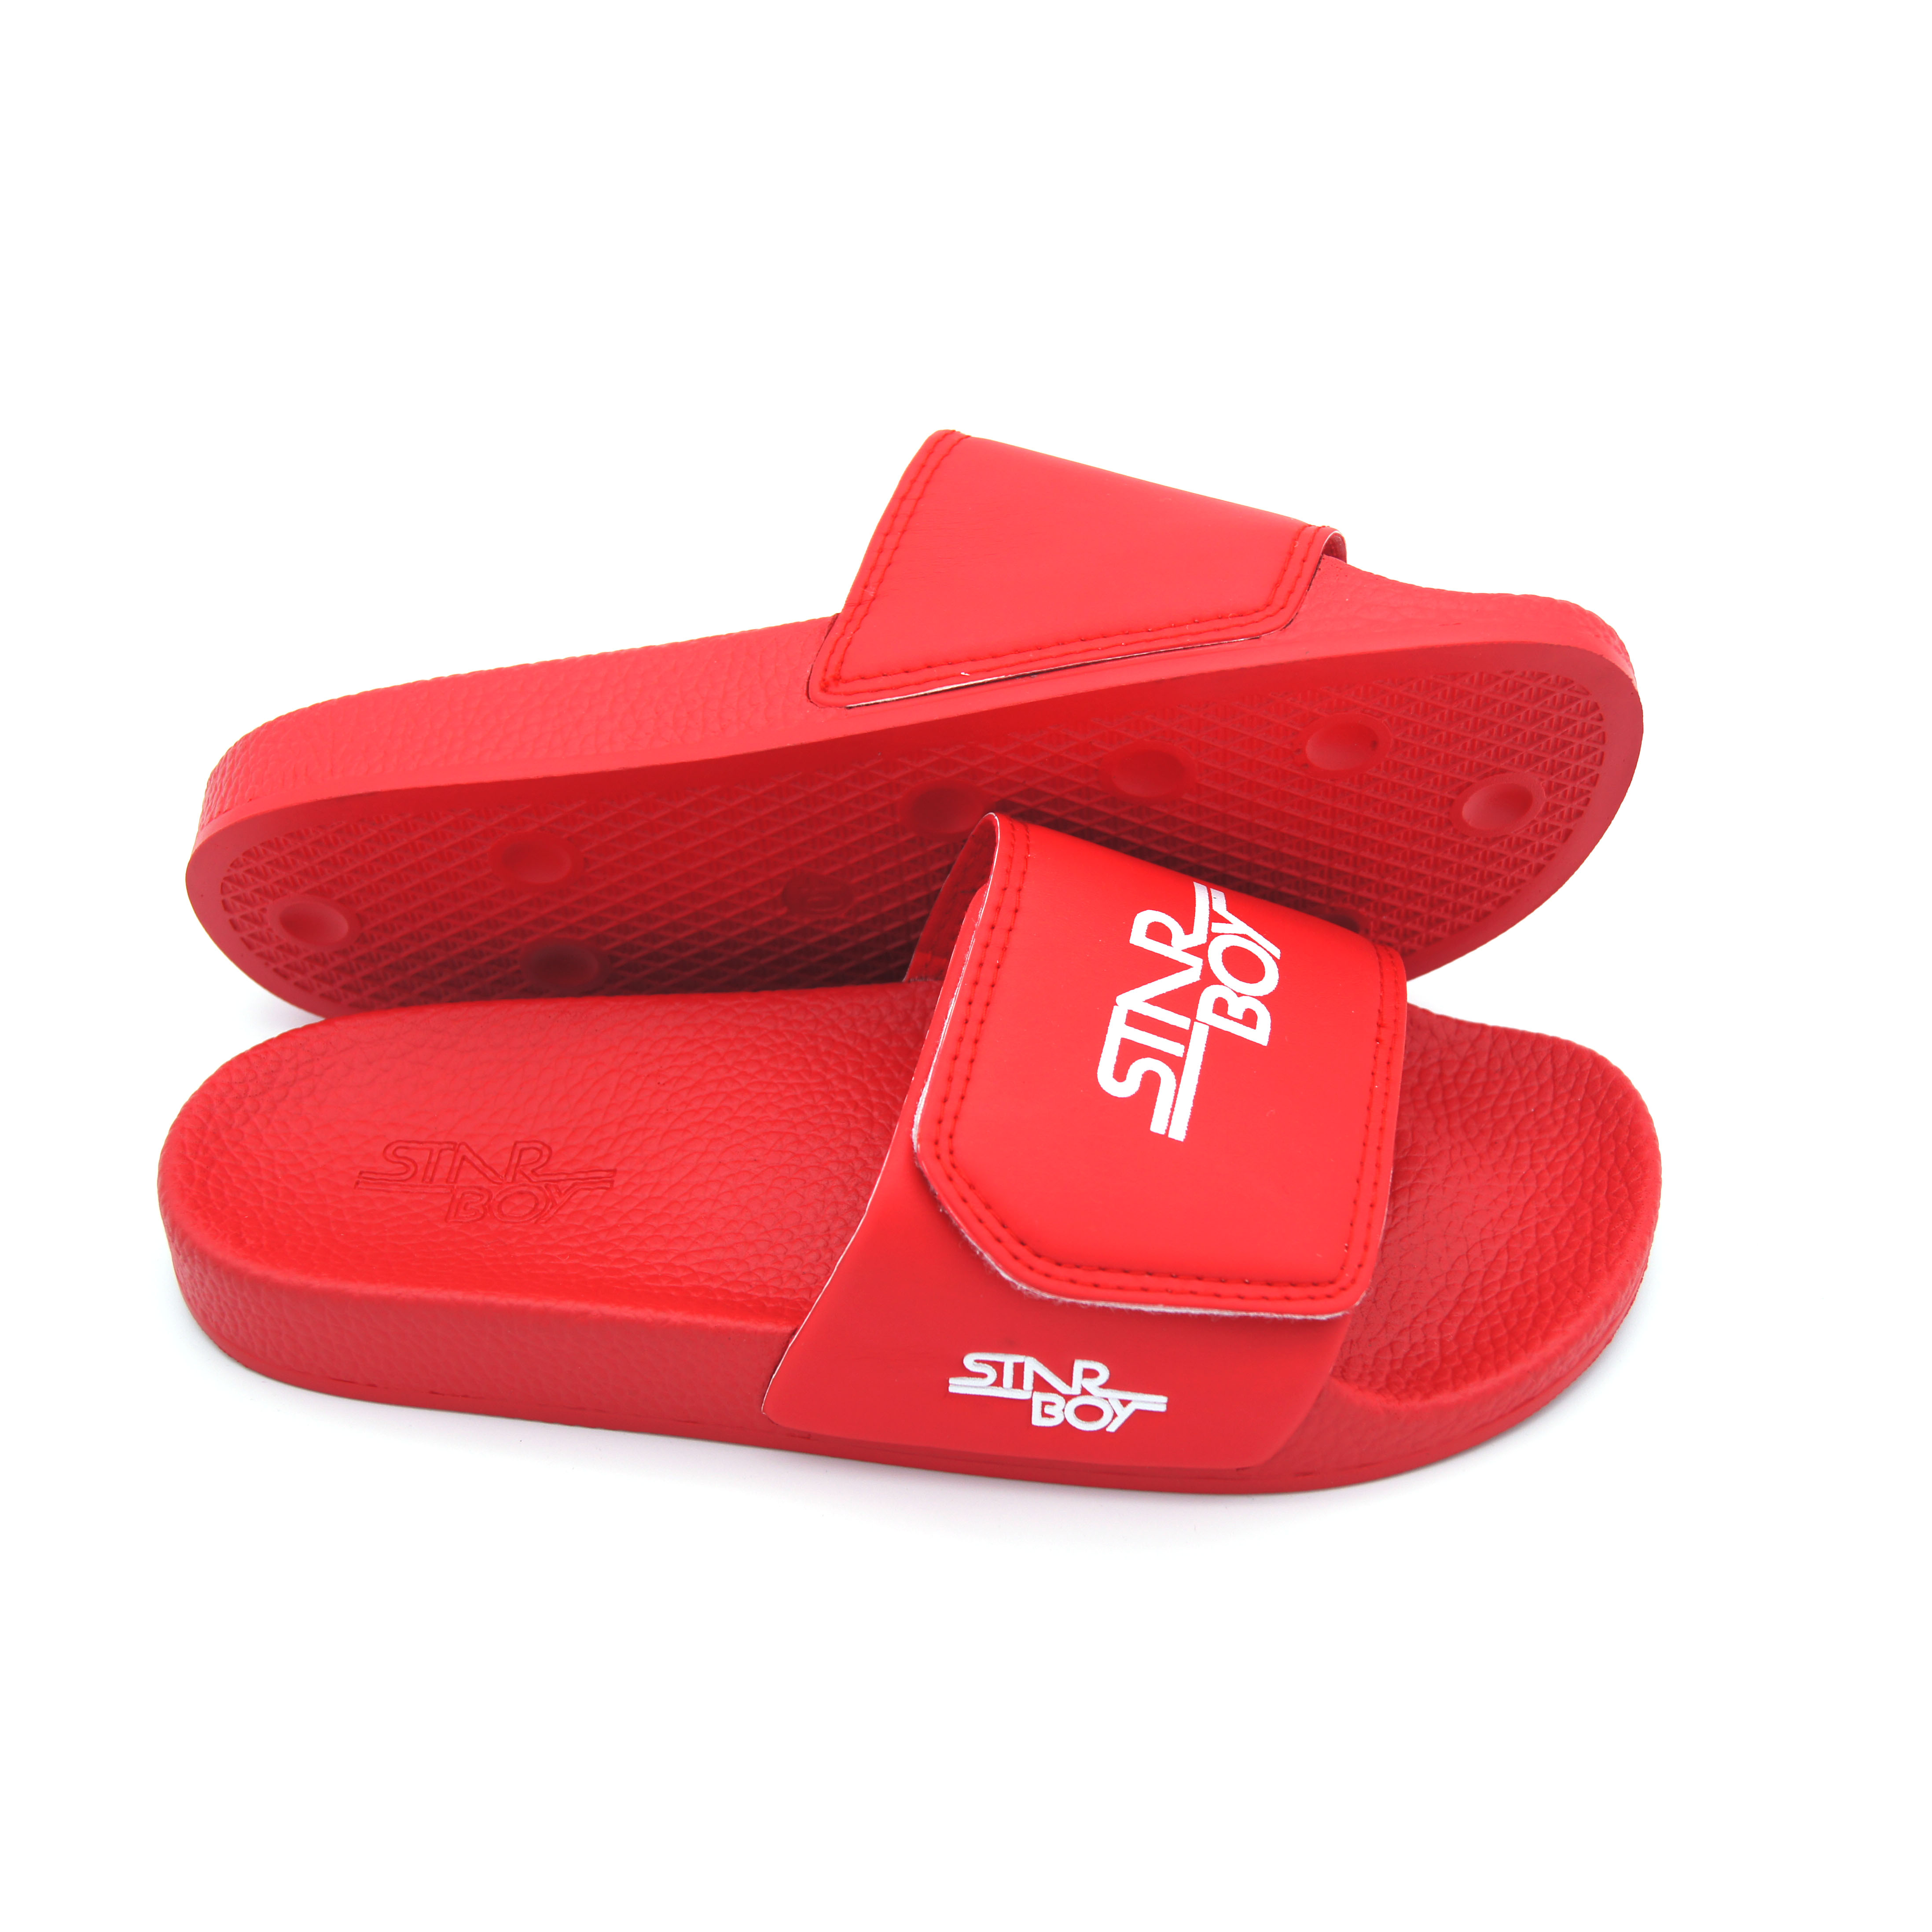 83d91cac1 China mens leather leather sandals wholesale 🇨🇳 - Alibaba